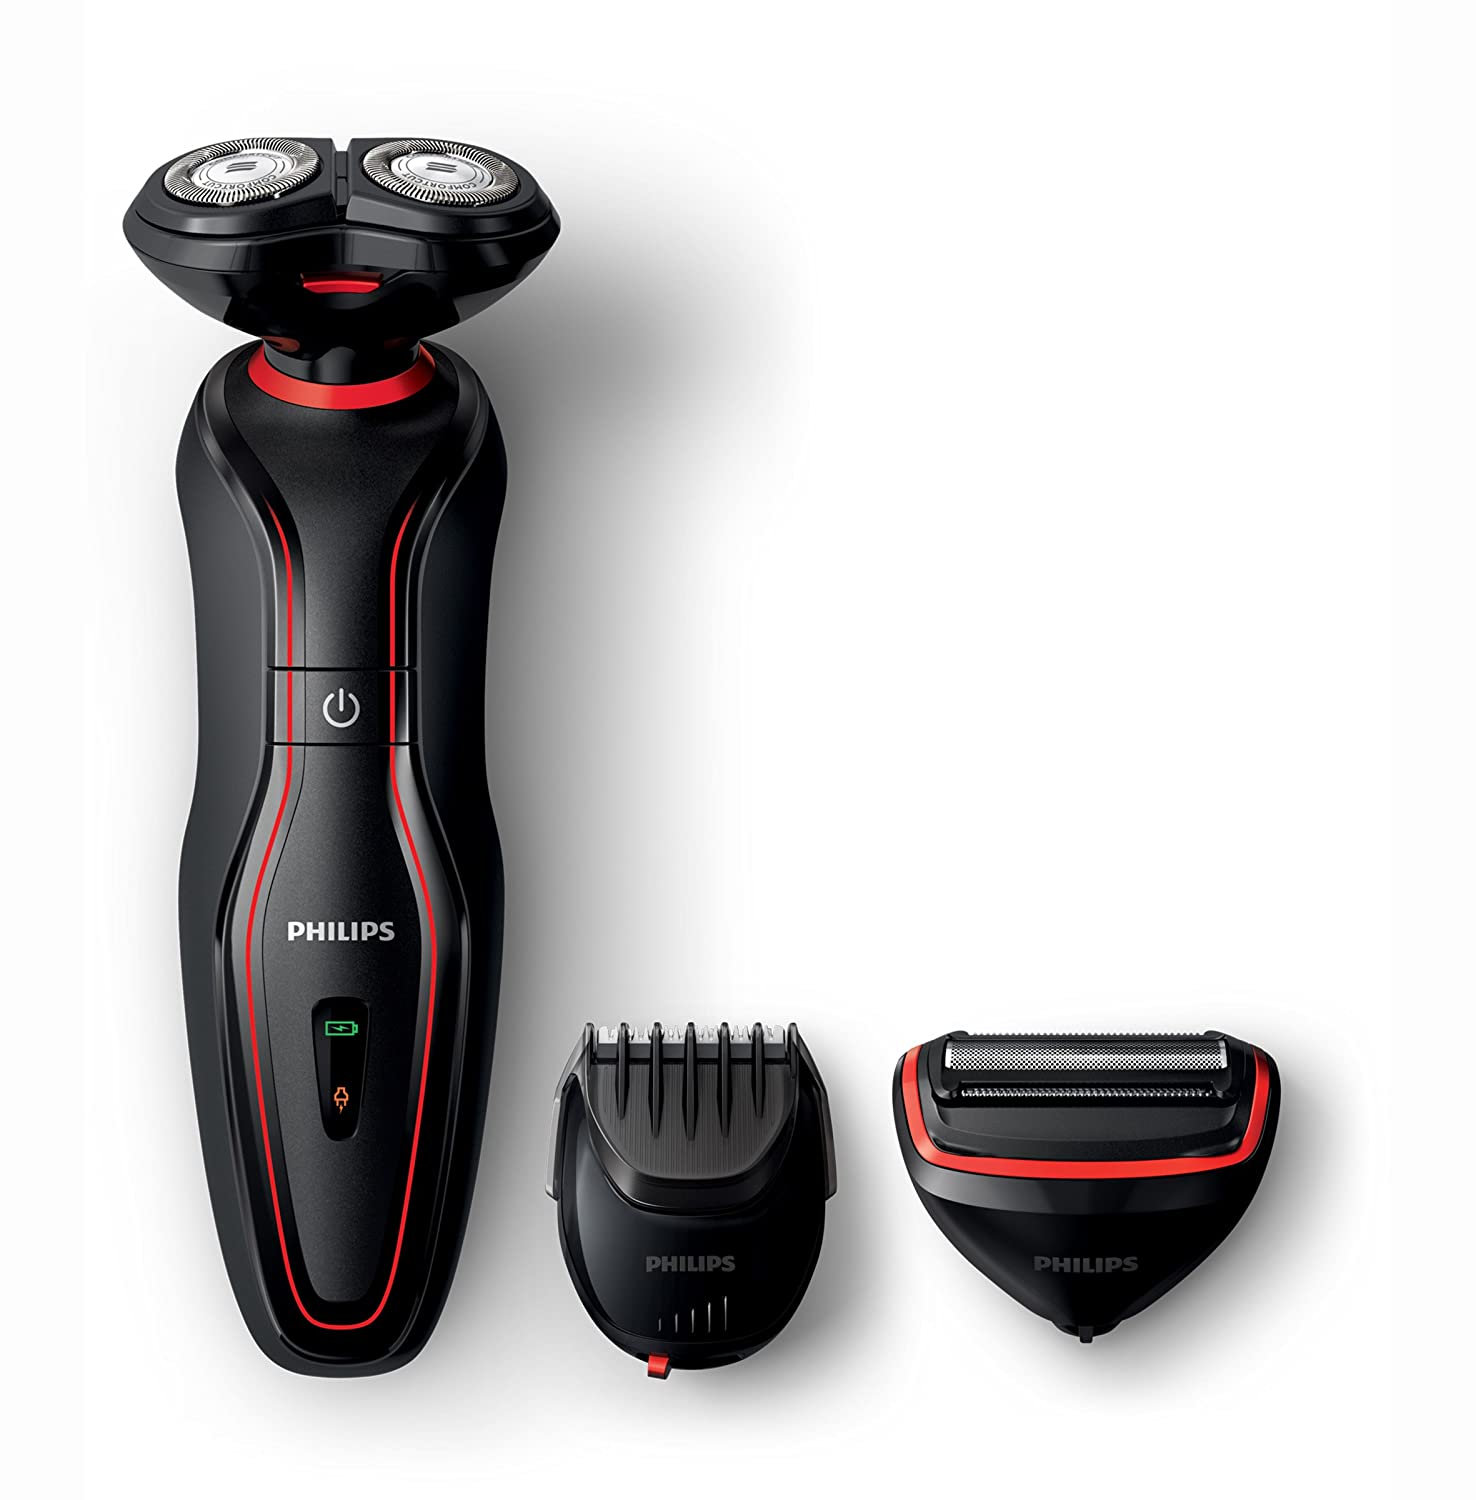 Philips S738/17 Series 1000 Click and Style Shaver / Beard Trimmer / Body Groom